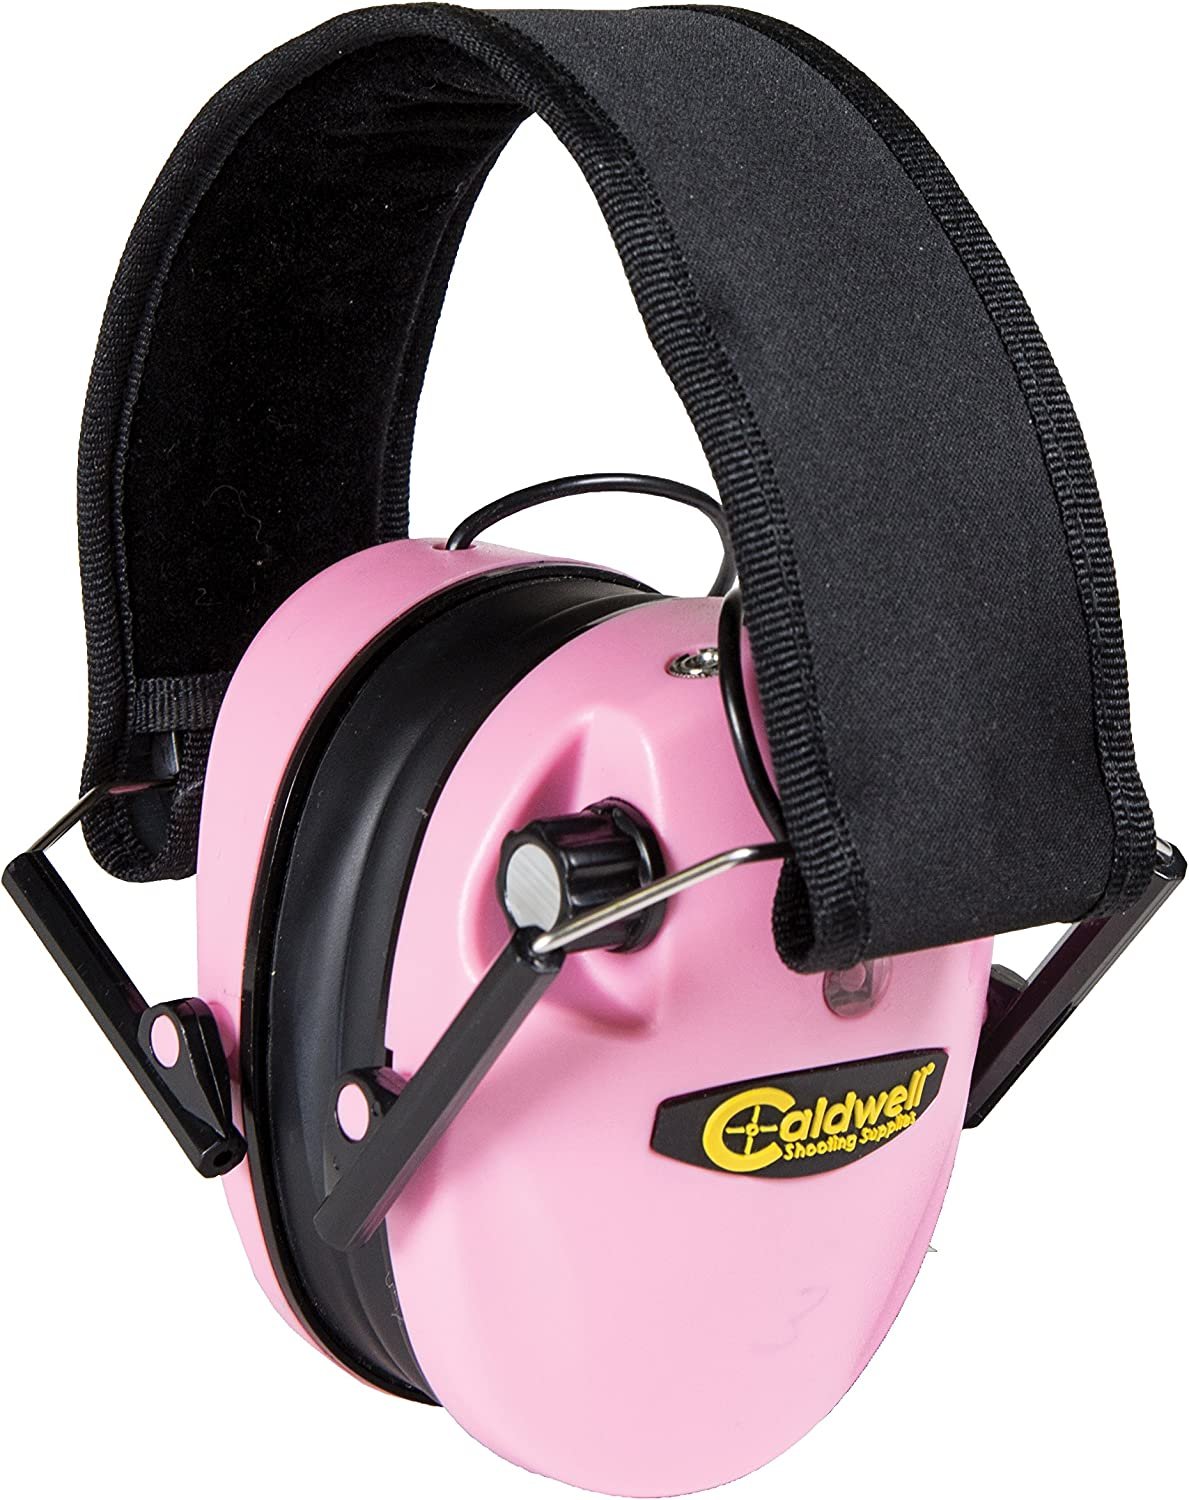 Caldwell E-Max - ADULT Pink Low Factory outlet Electronic Genuine Free Shipping Hear Profile 23 NRR